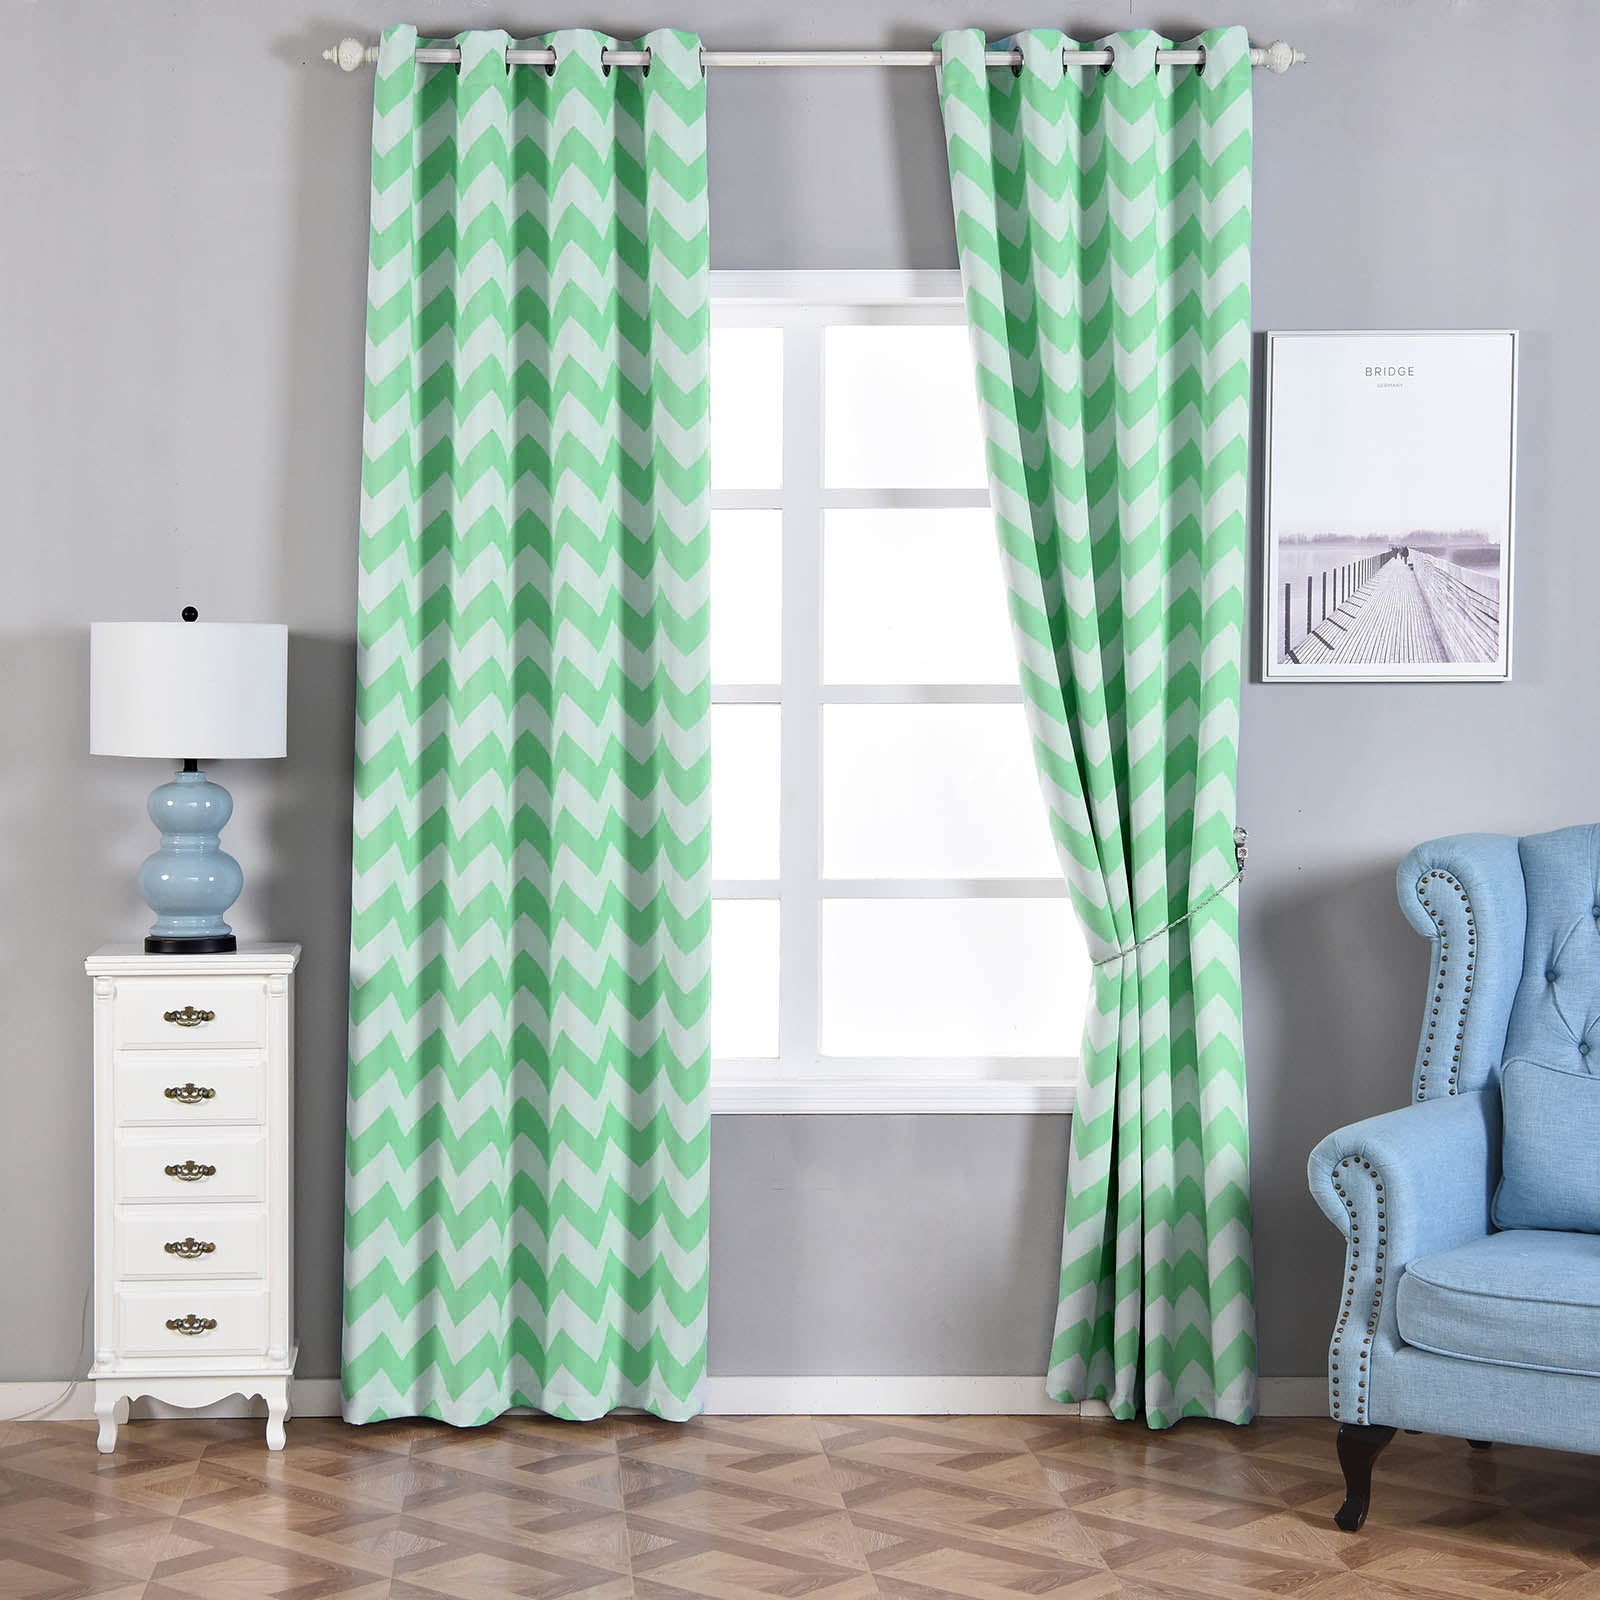 Blackout Curtains 52x108 White Mint Chevron Design Pack Of 2 Thermal Insulated With Chrome Grommet Window Treatment Panels